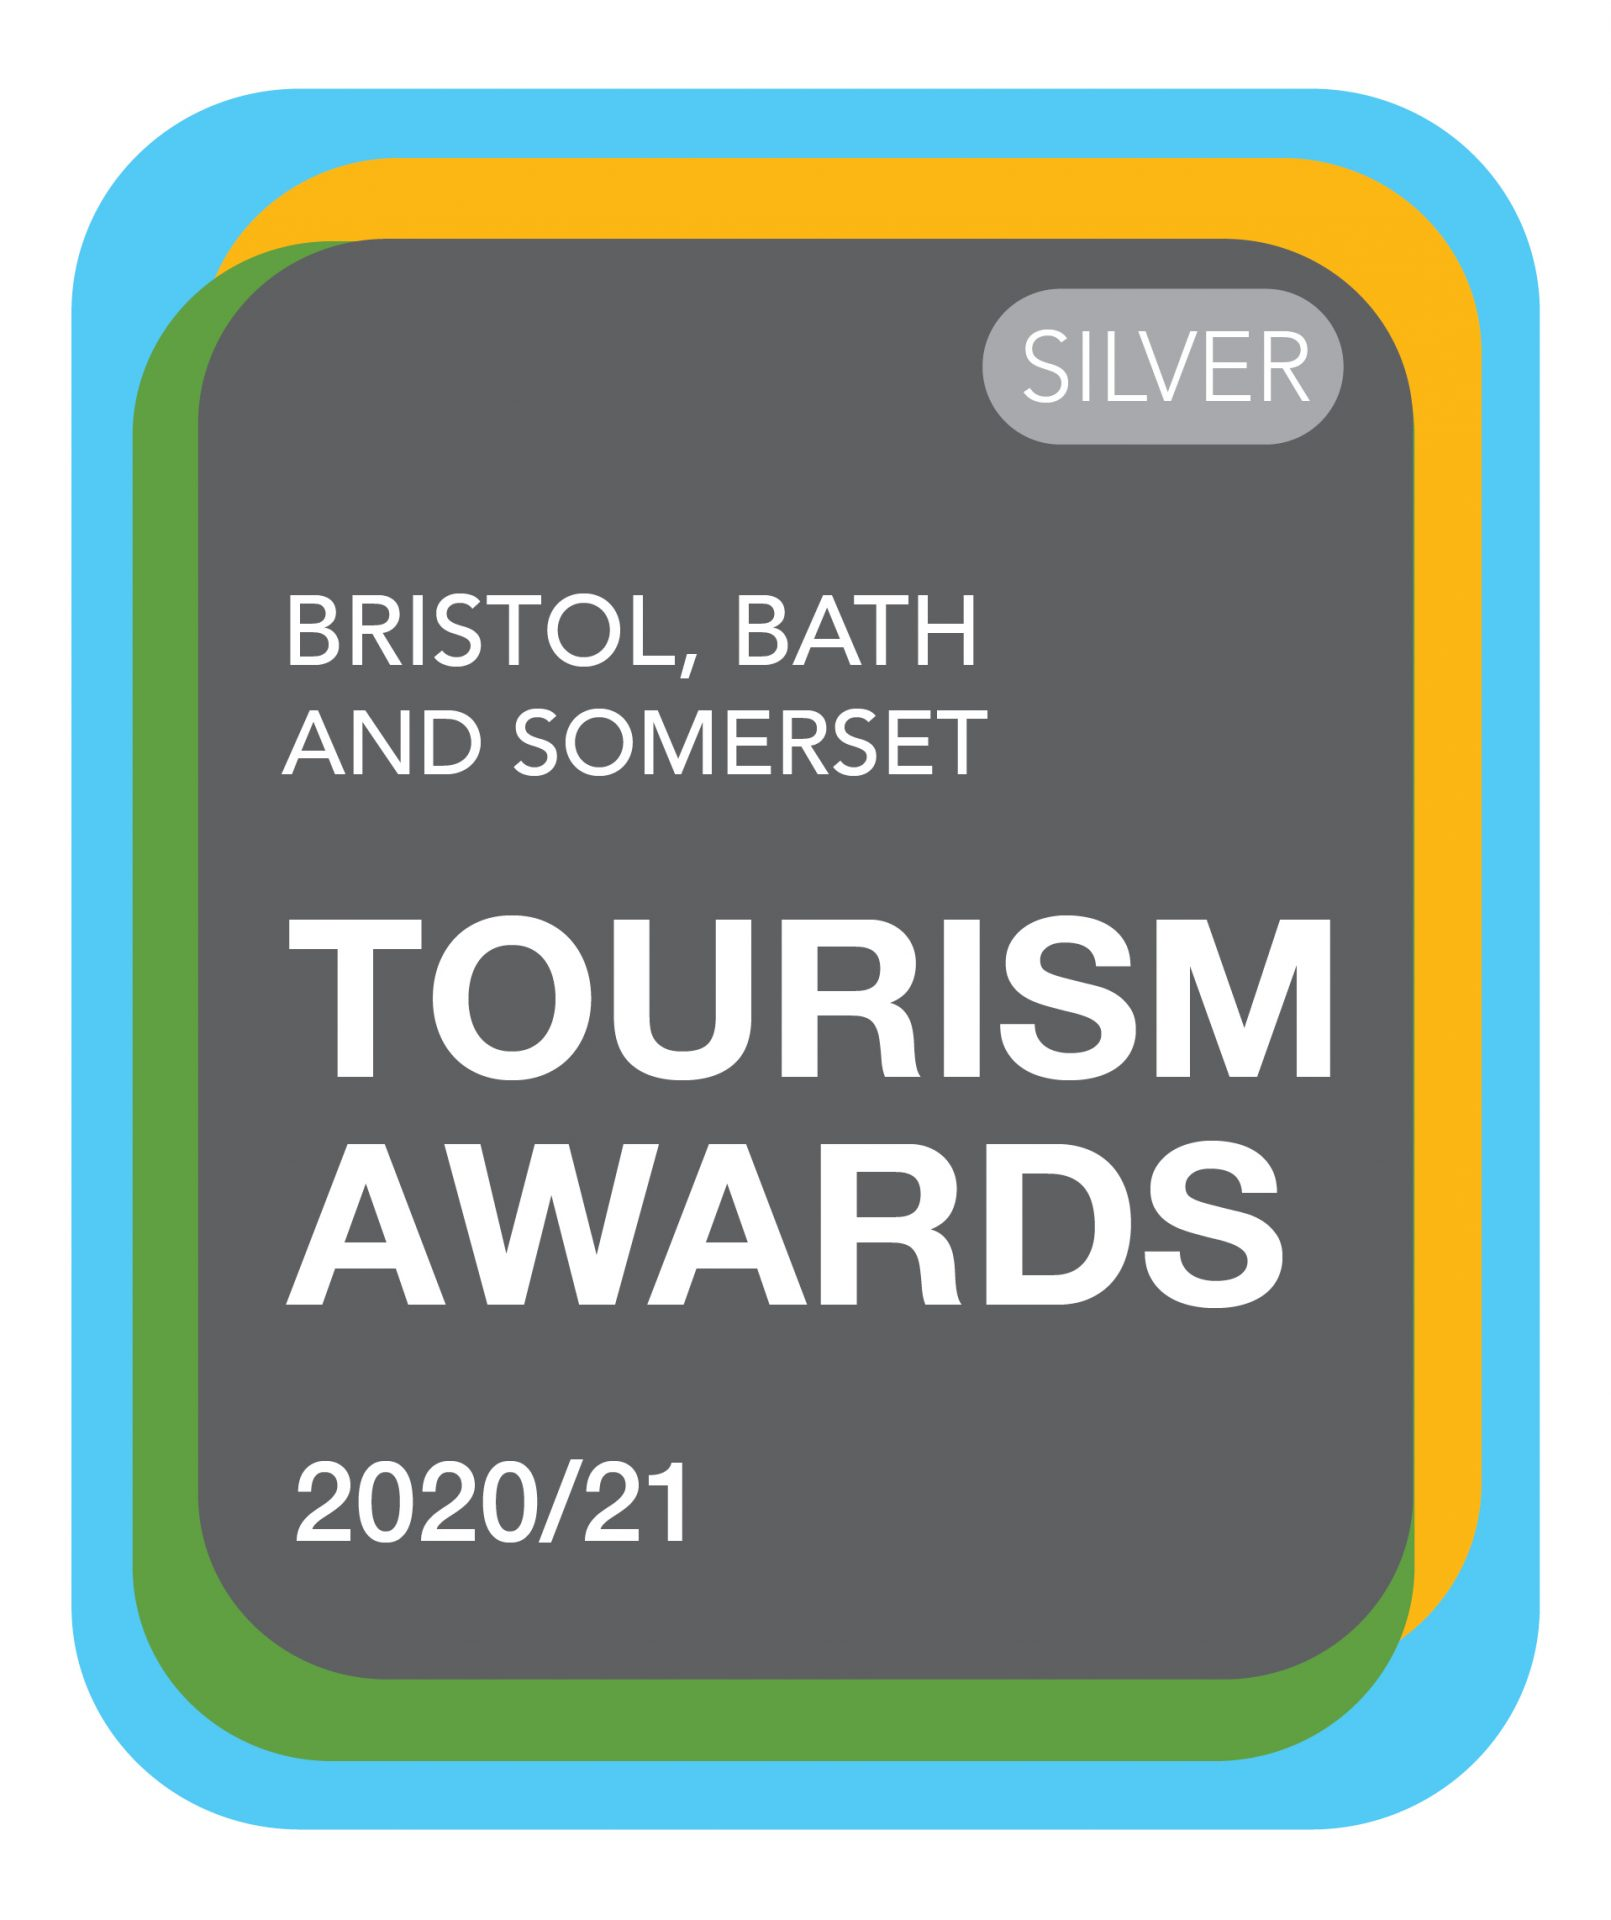 Blackmore Farm wins Silver Awards at Bristol, Bath and Somerset Tourism Awards